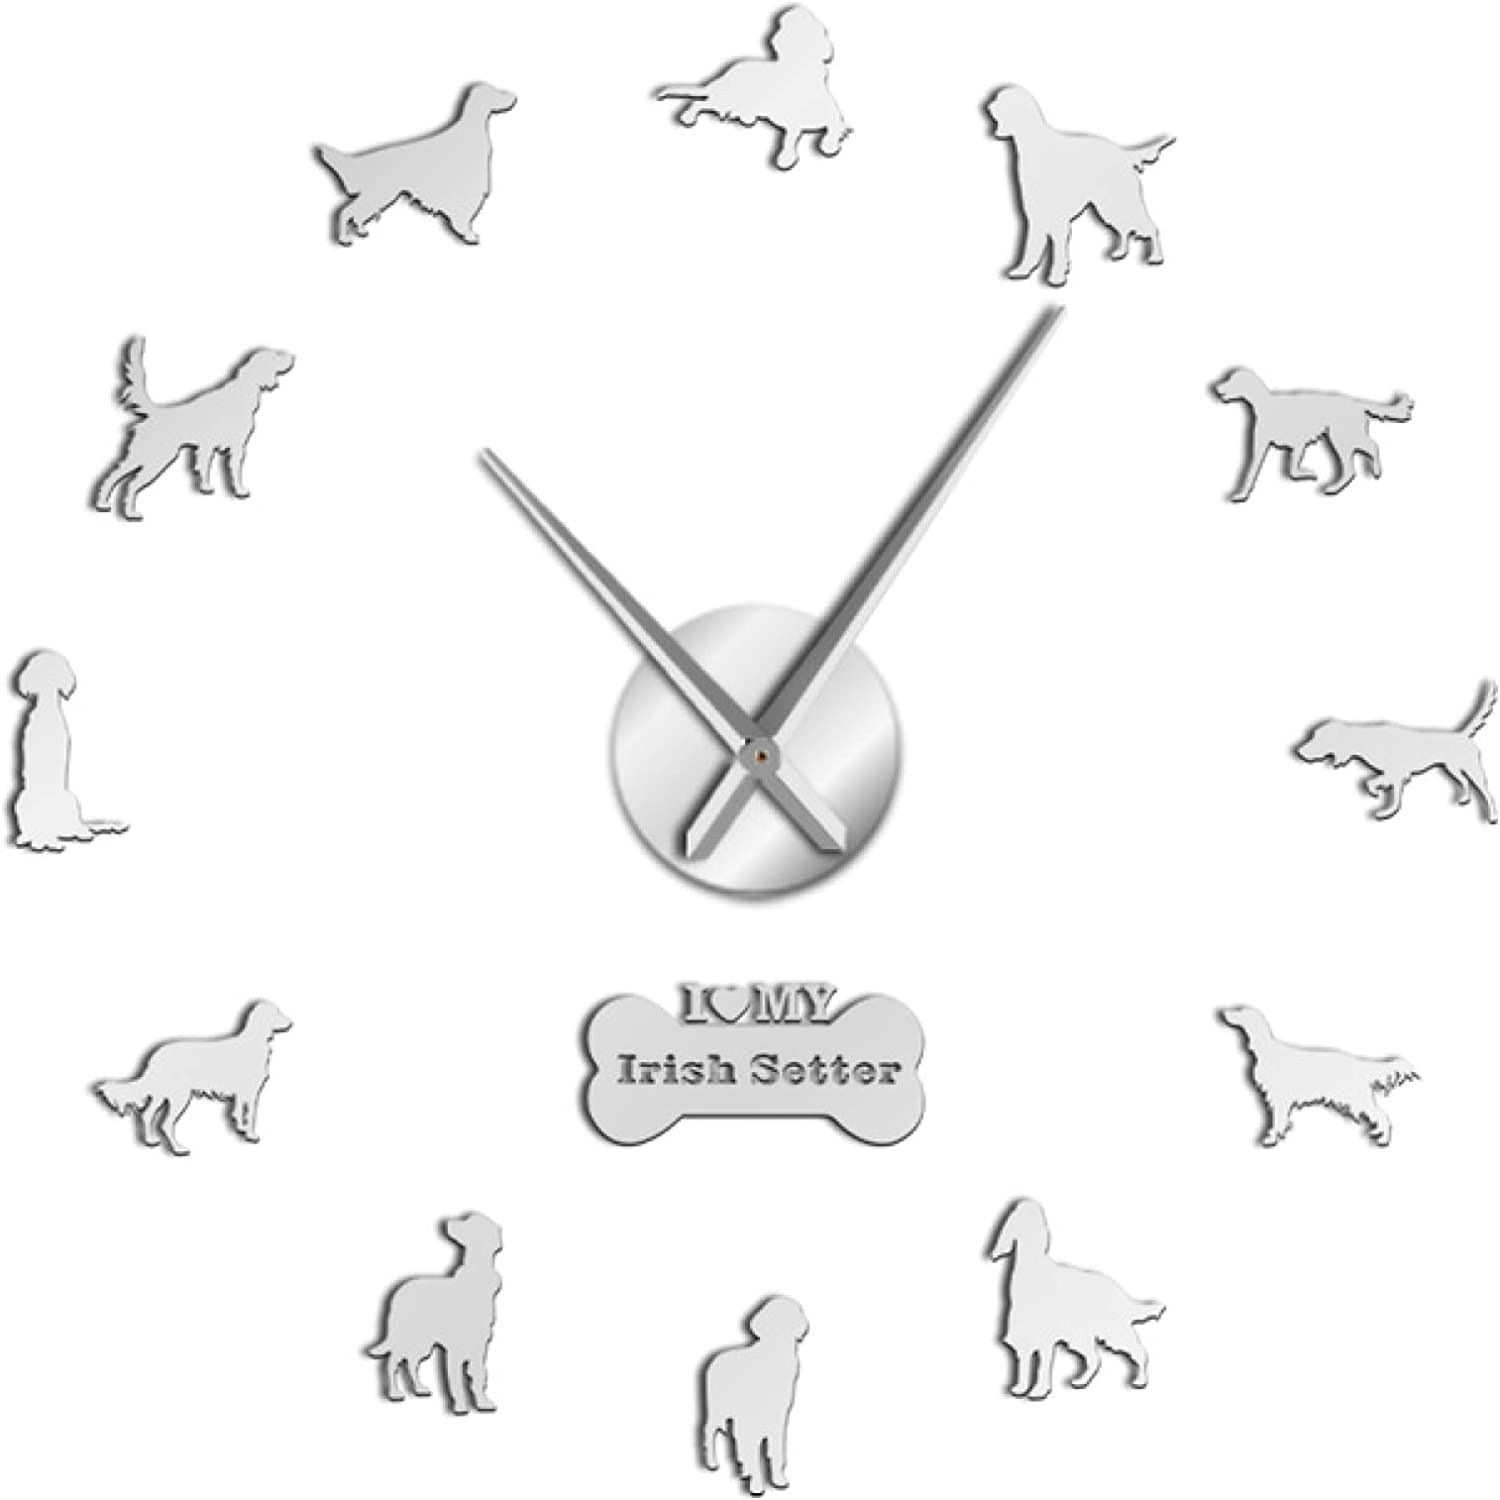 Now free shipping Xinxin Wall Clock Exclusive excellence Irish Effect Mirror Setter DIY Large